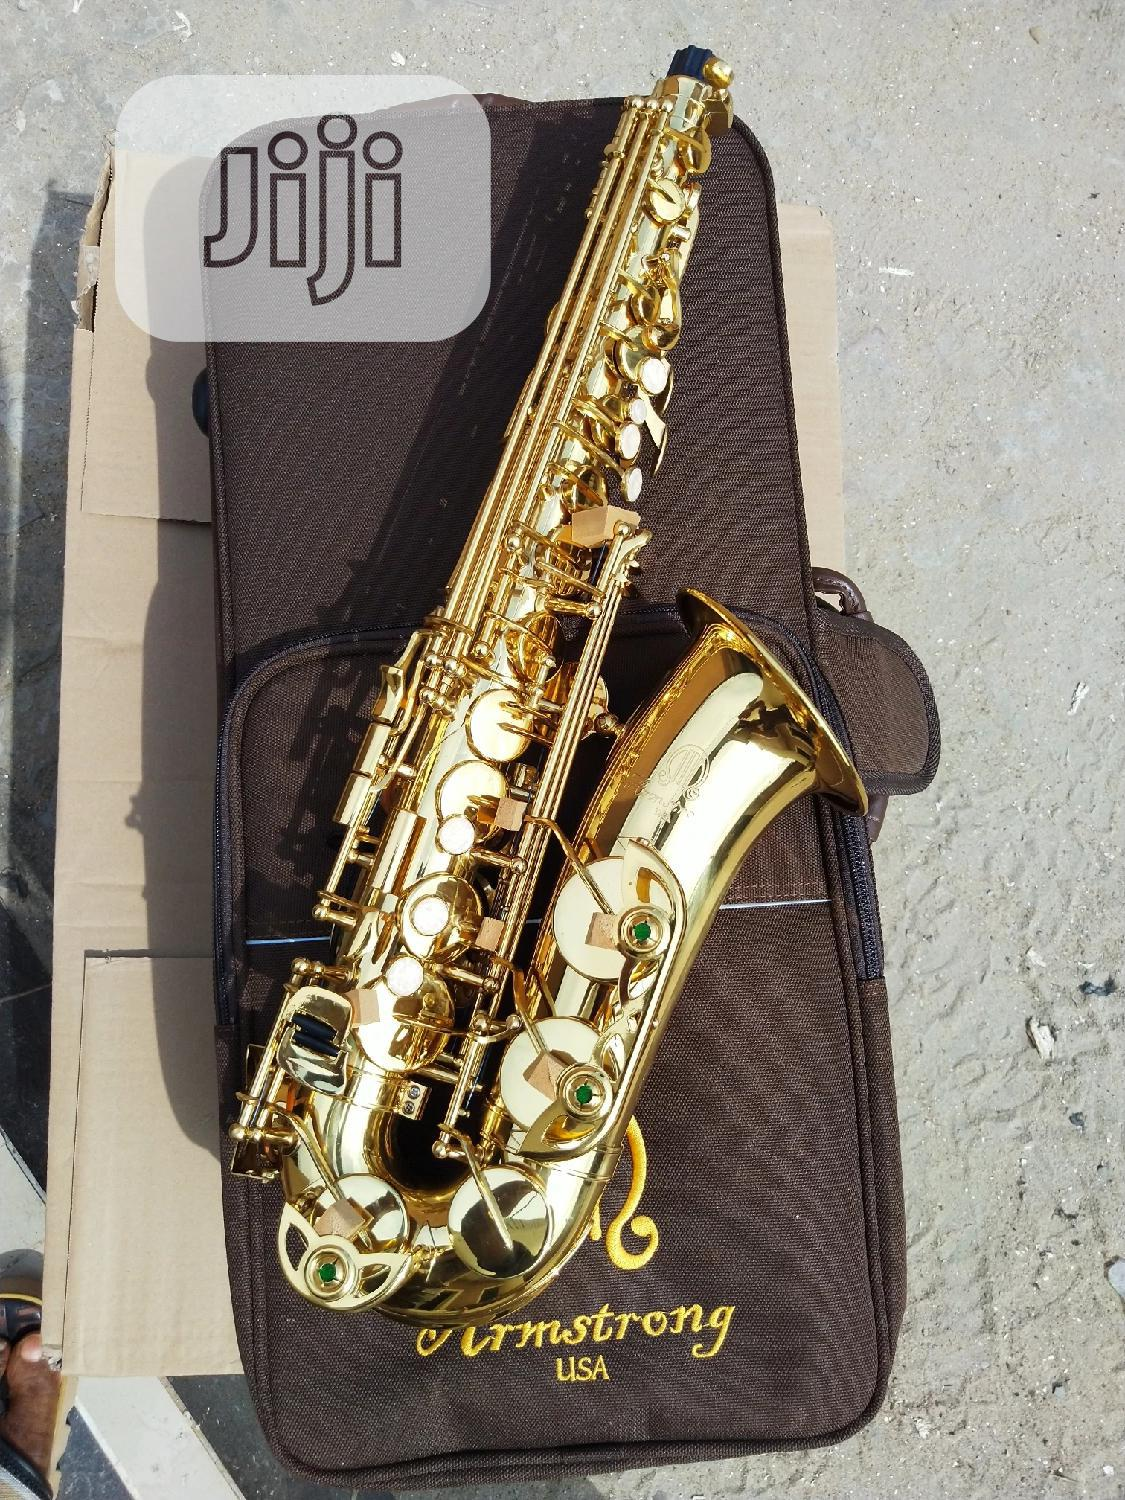 Armstrong Professional Alto Saxophone | Musical Instruments & Gear for sale in Lekki, Lagos State, Nigeria